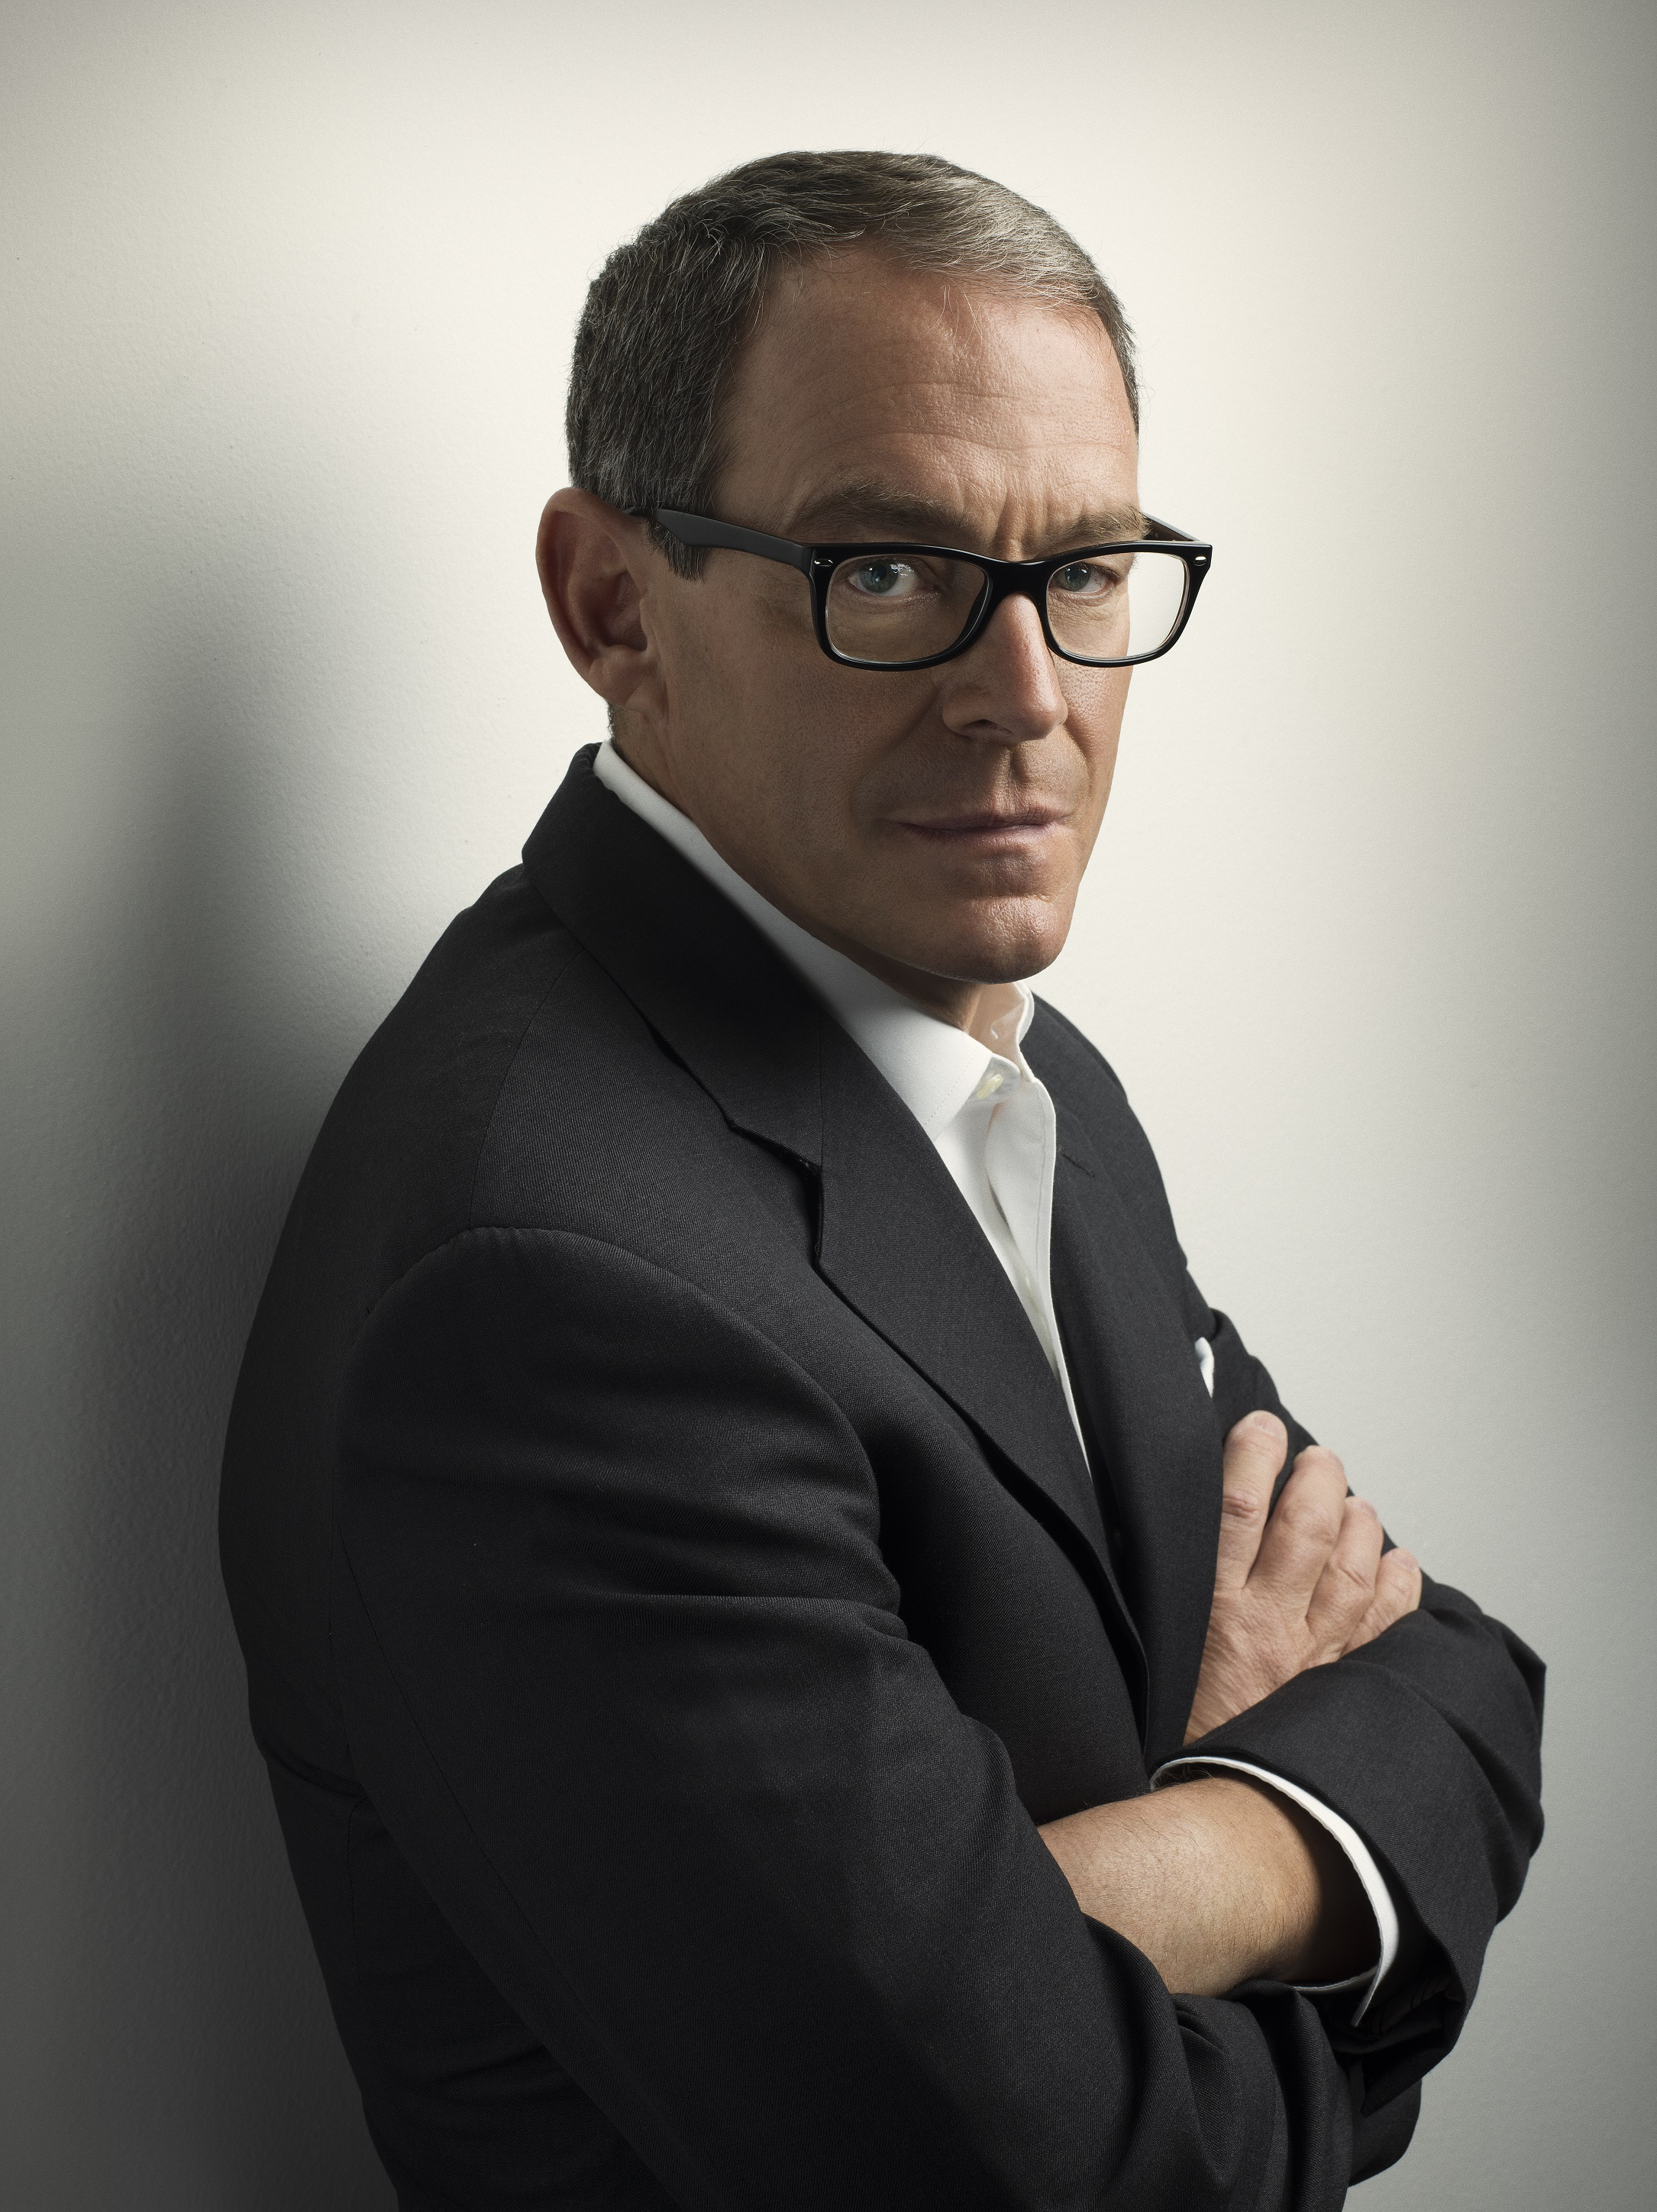 Photo credit: Marco Grob. Author wears a dark jacket, a white shirt, and black framed glasses. He leans against a wall with his arms folded